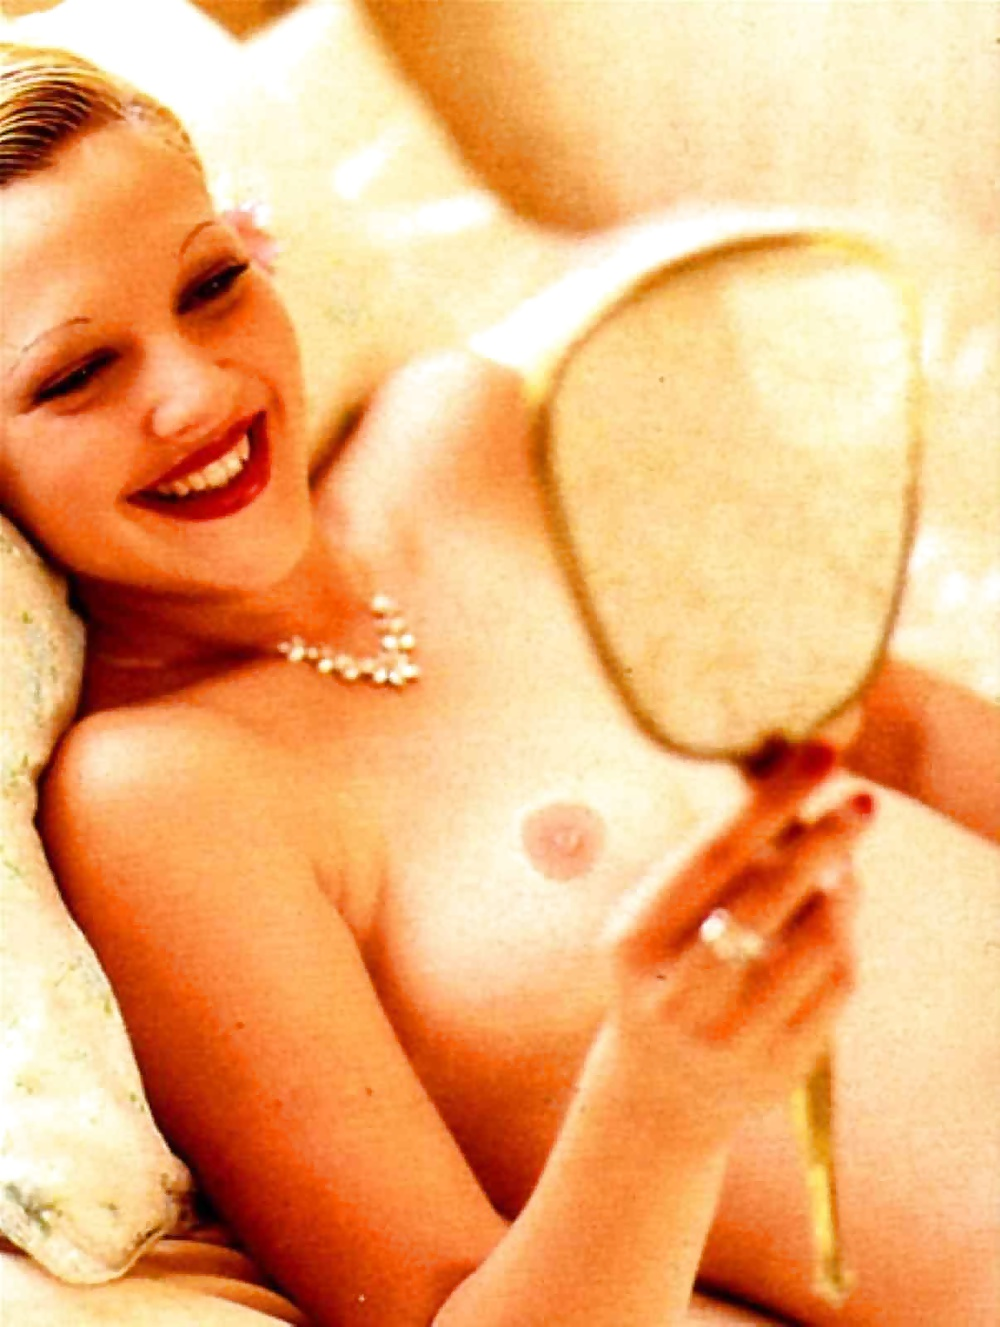 Free nude pictures of drew barrymore, born hustler natural